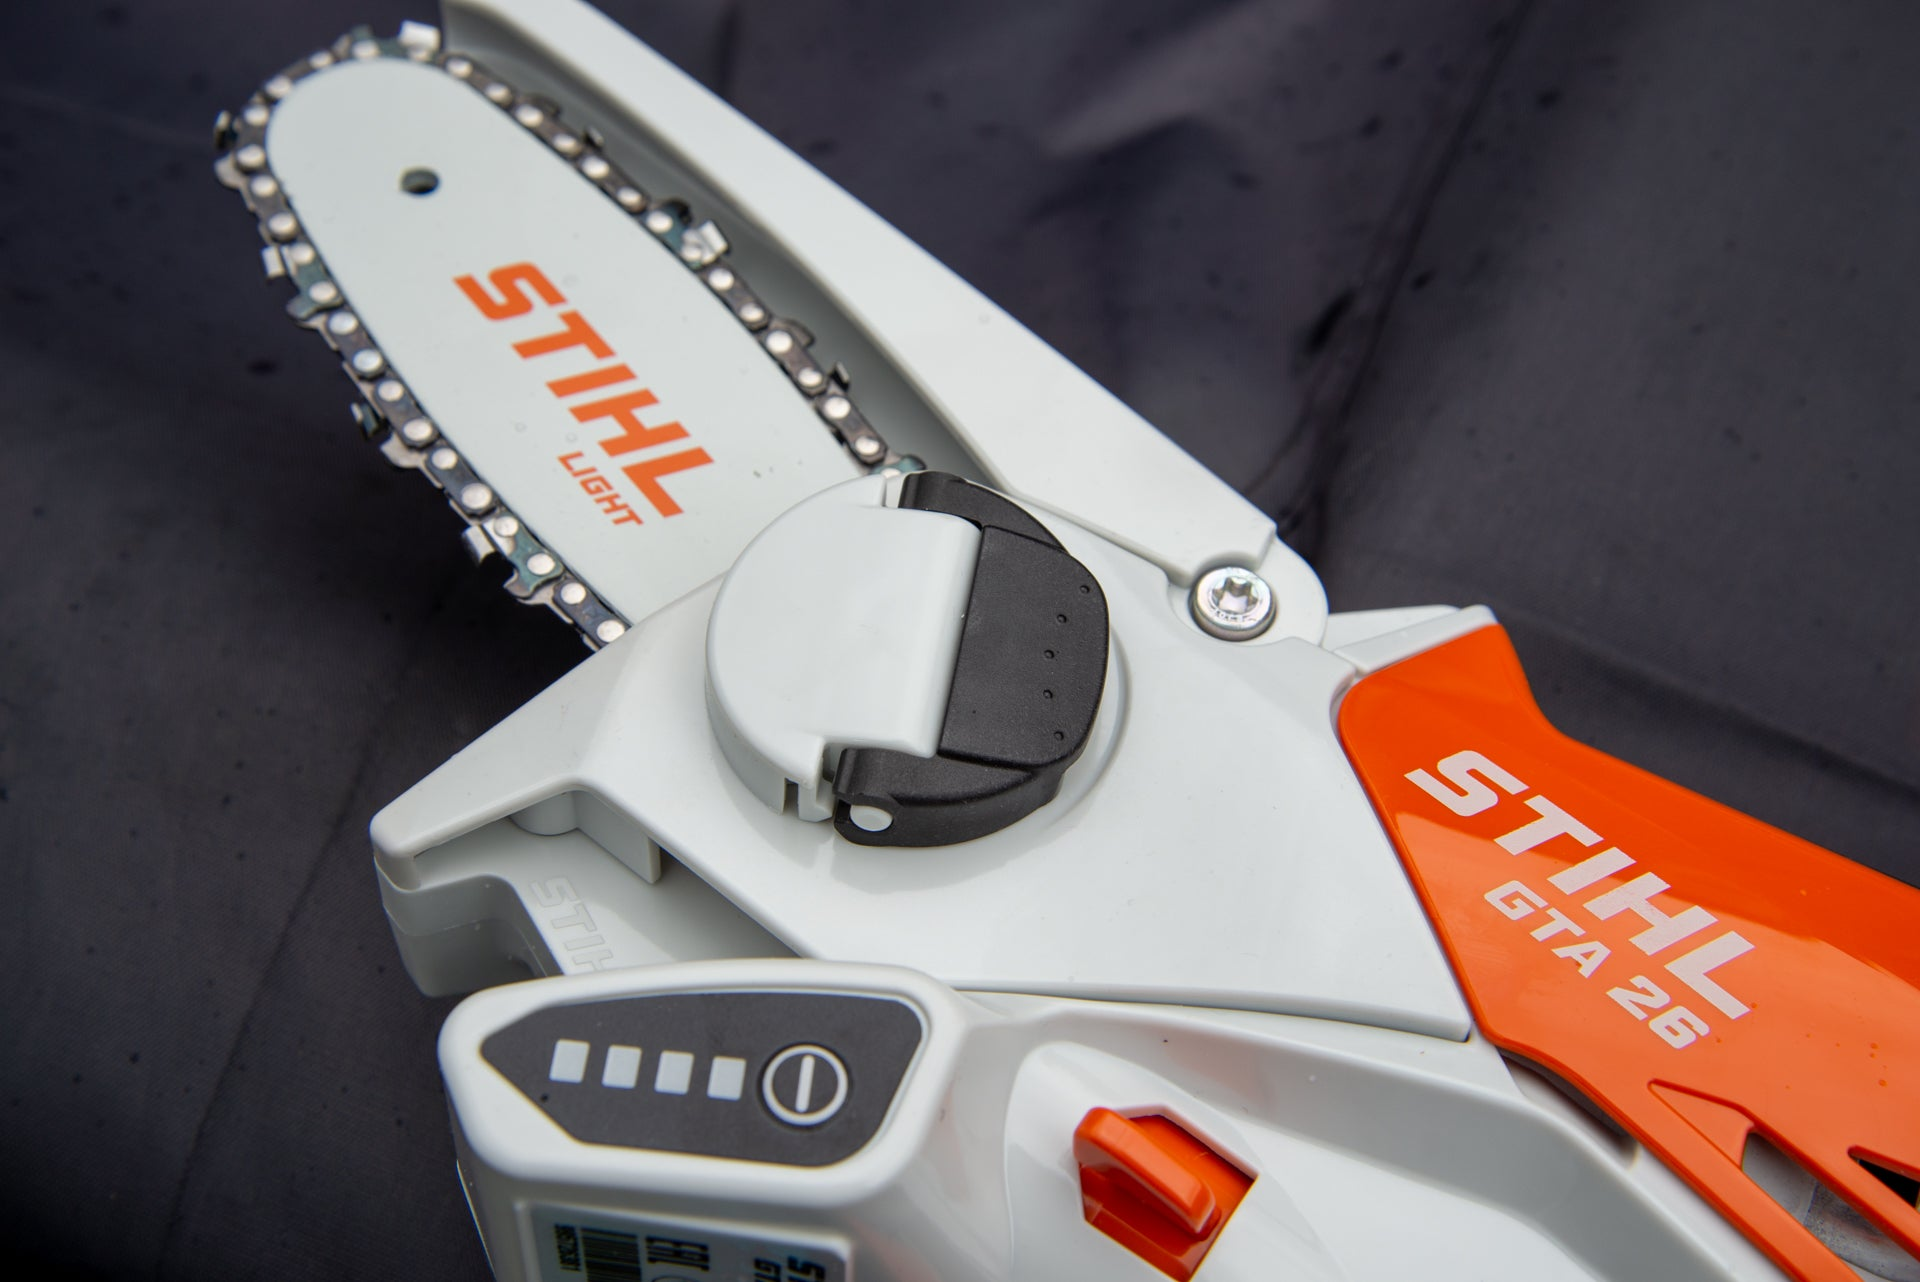 Stihl GTA 26 battery meter and sprocket cover